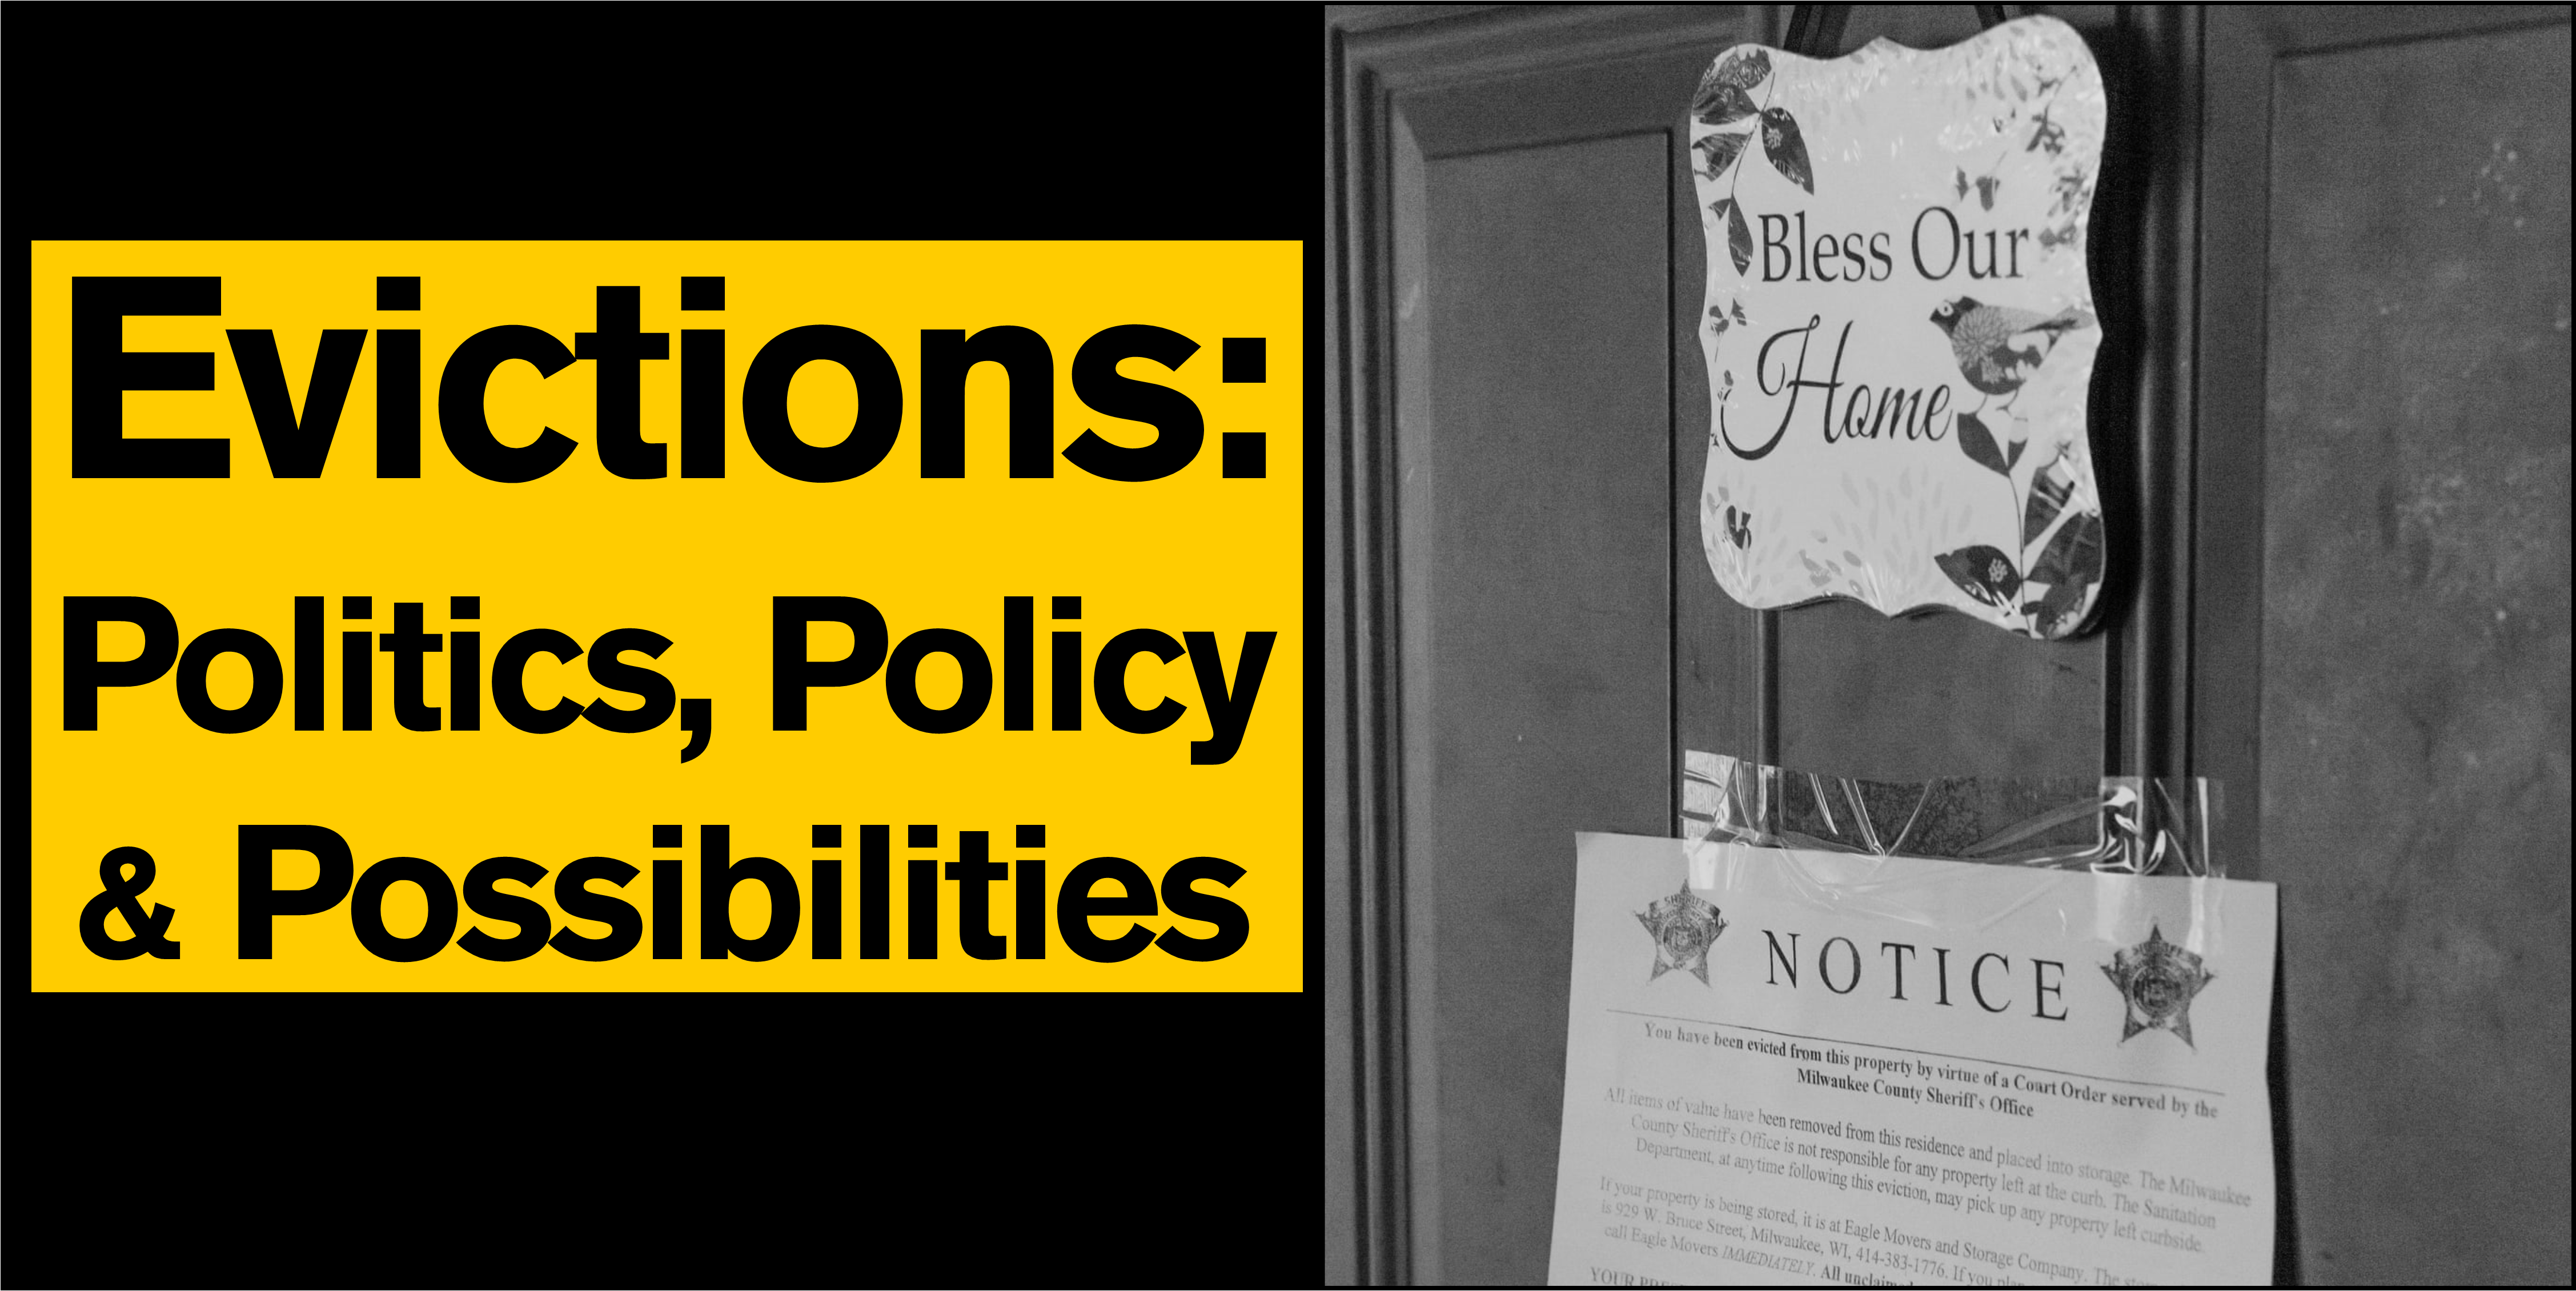 Evictions: Politics, Policy and Possibilities